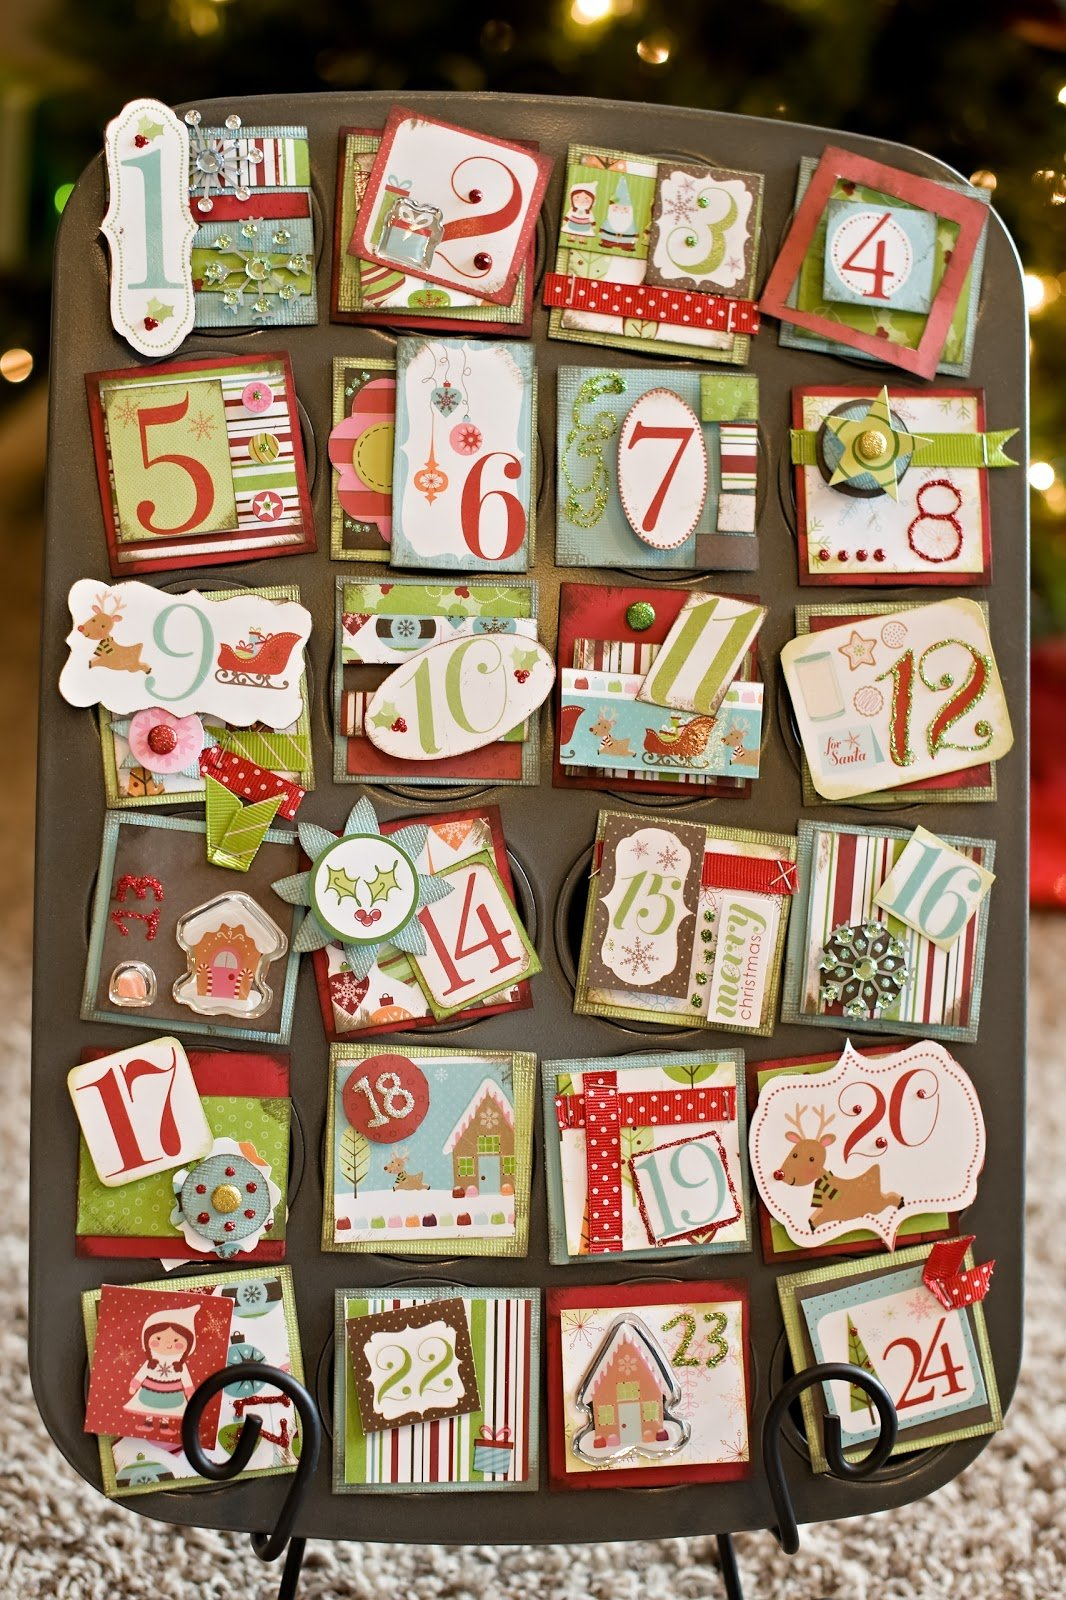 Darin. Jessie. Nora.: Muffin Pan Advent Calendar How To Make Mini Calendars Of Only Monday To Friday